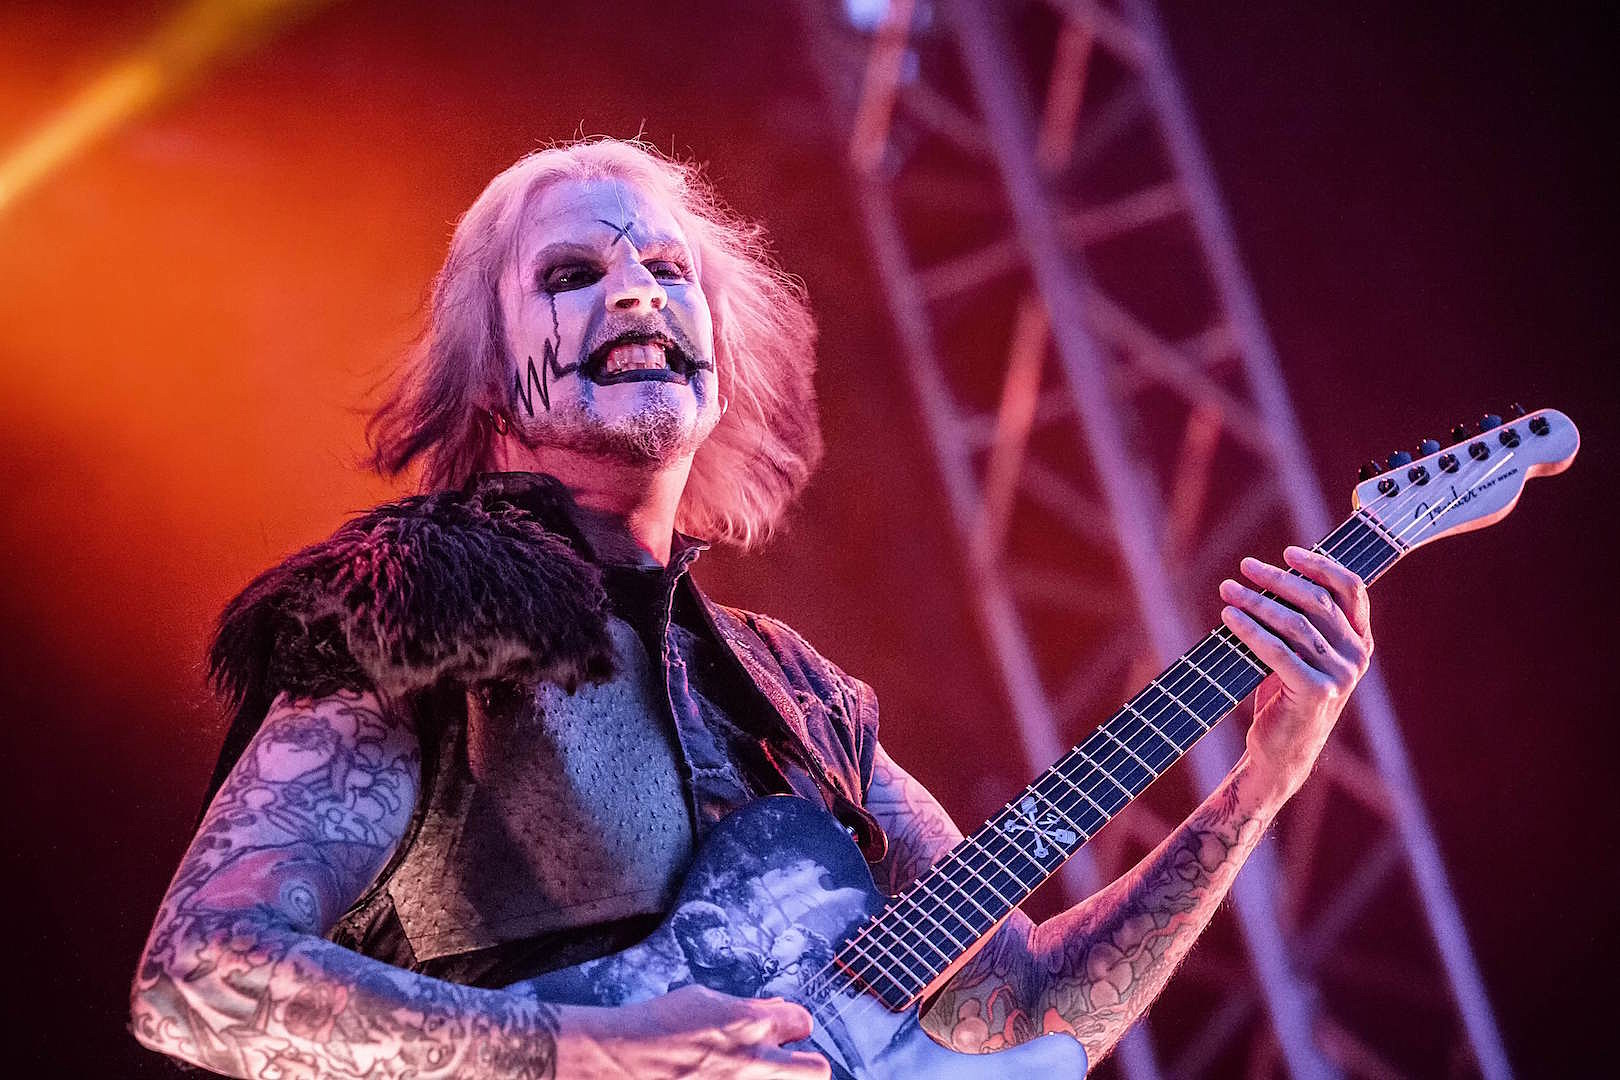 The 49-year old son of father (?) and mother(?) John 5 in 2021 photo. John 5 earned a  million dollar salary - leaving the net worth at  million in 2021